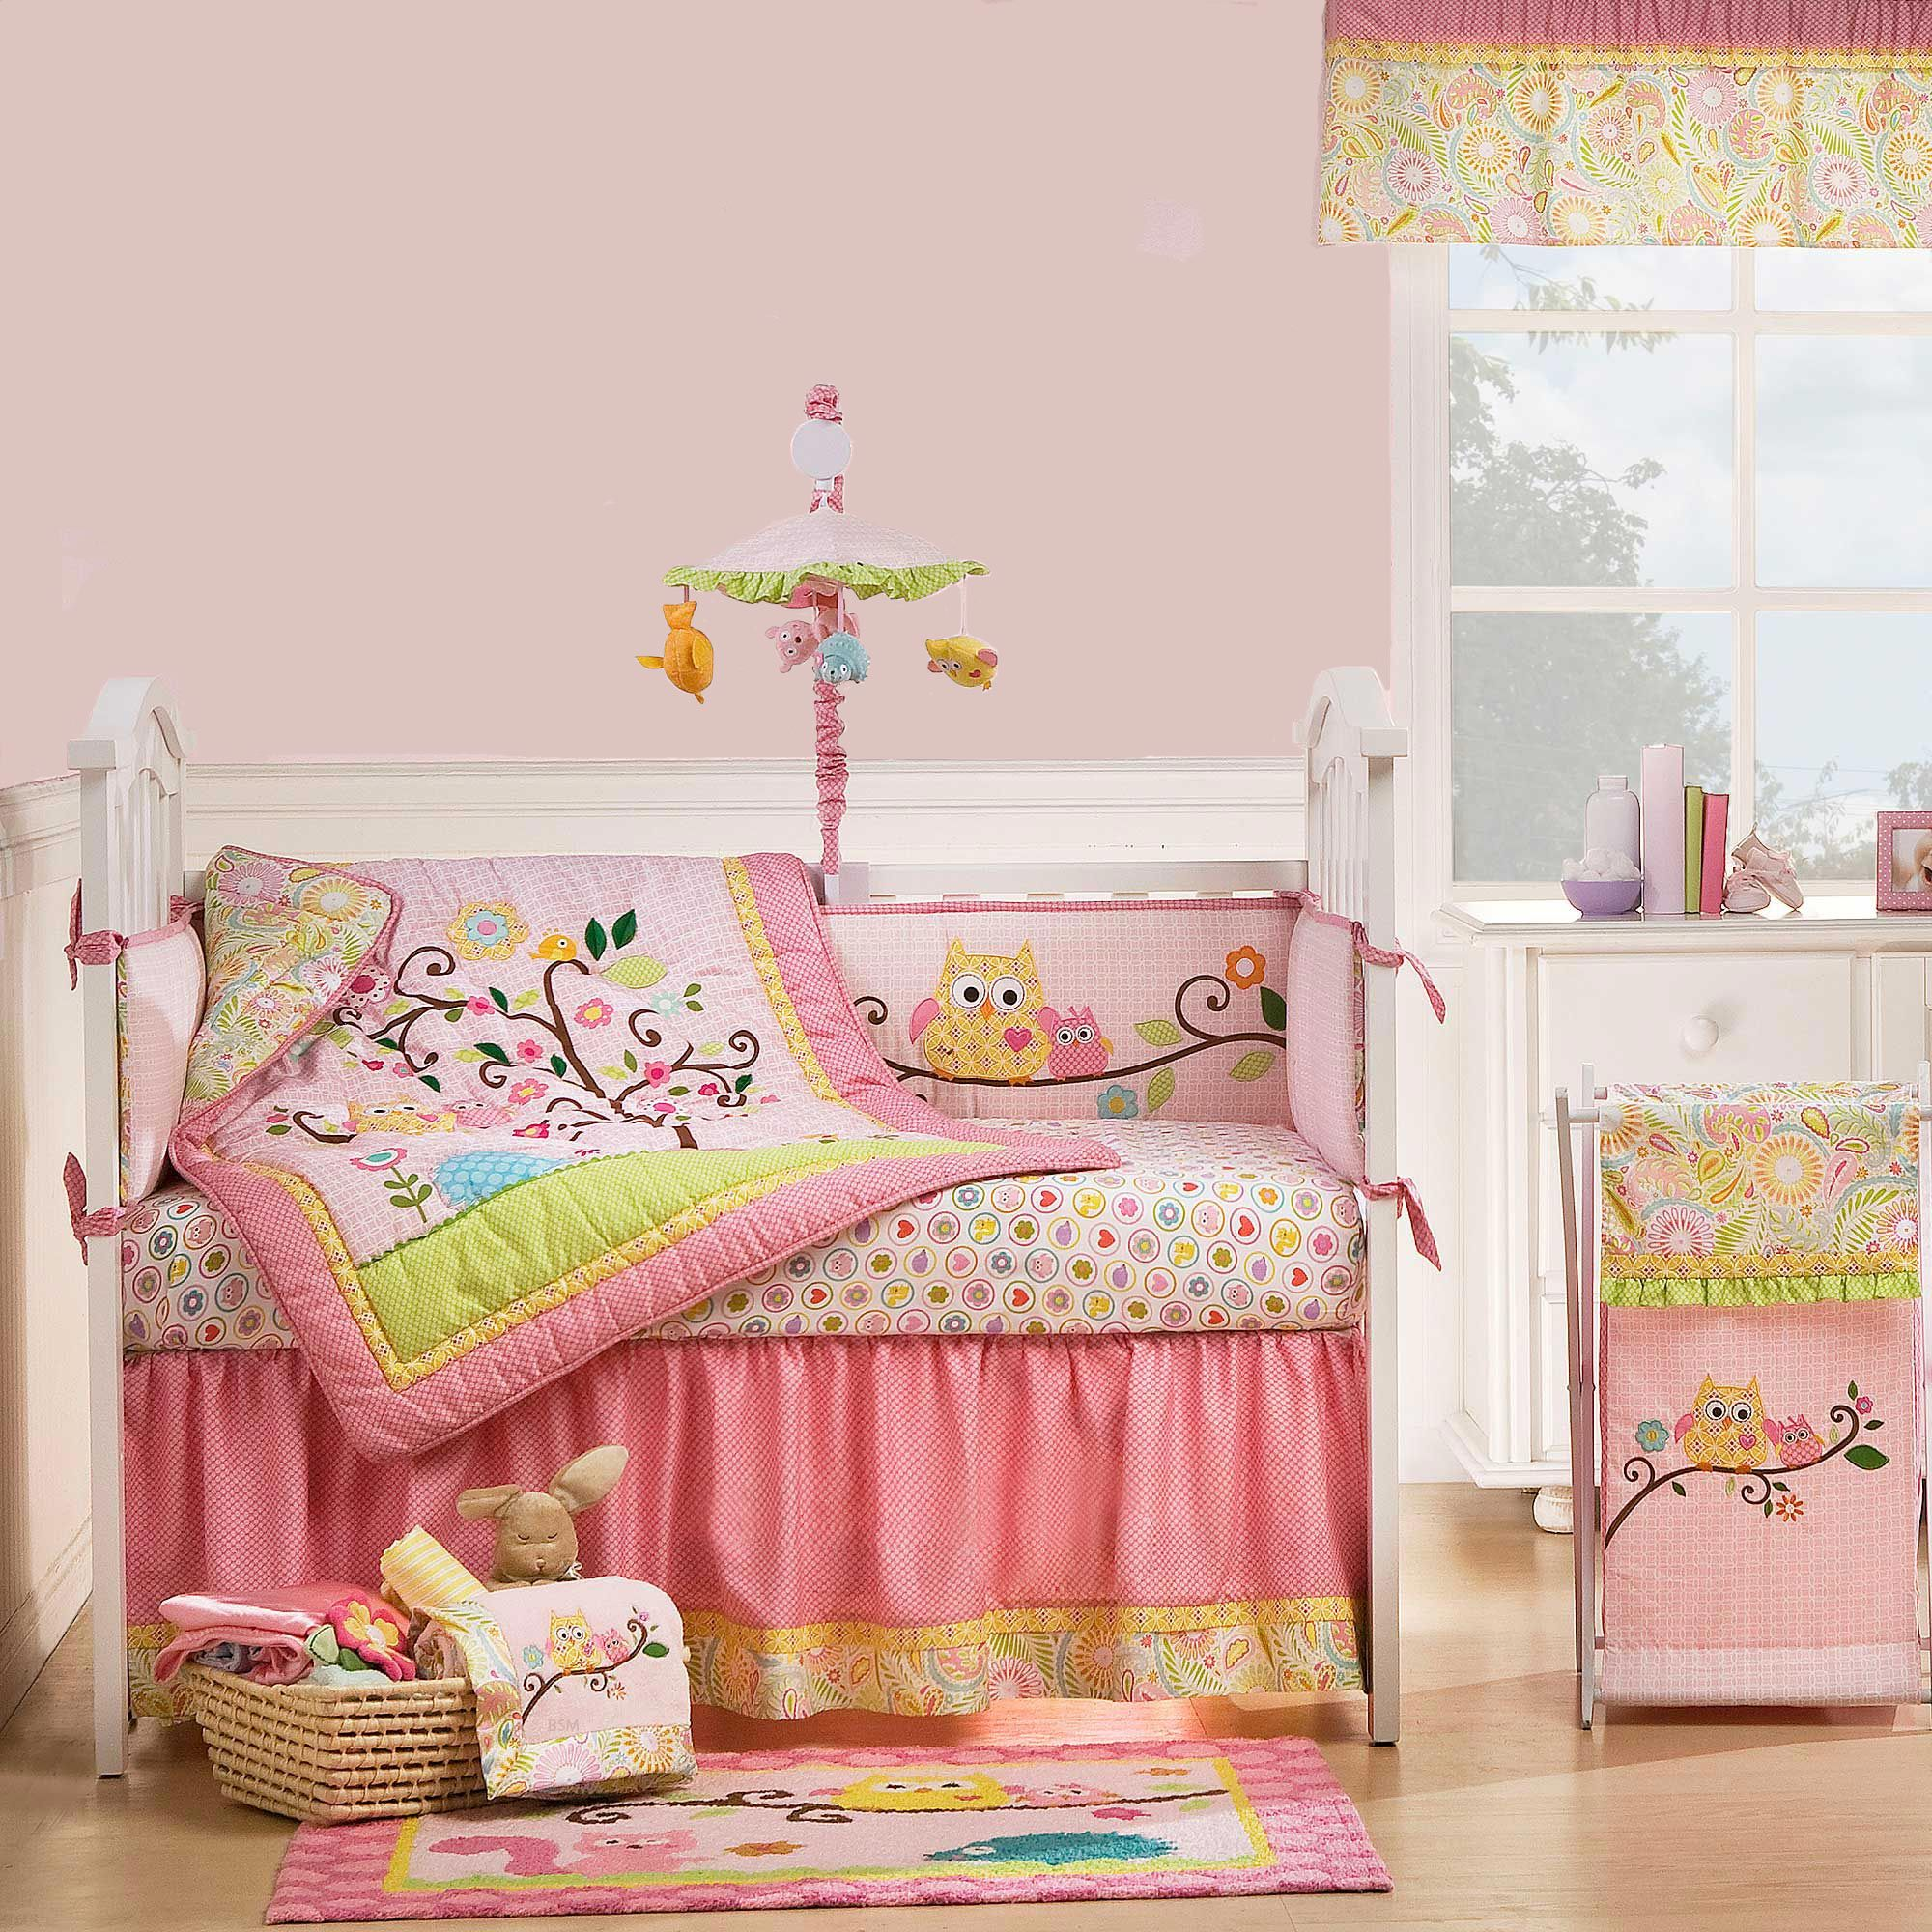 Happi Tree Crib Bedding Collection. Full of bright colors and cute ...